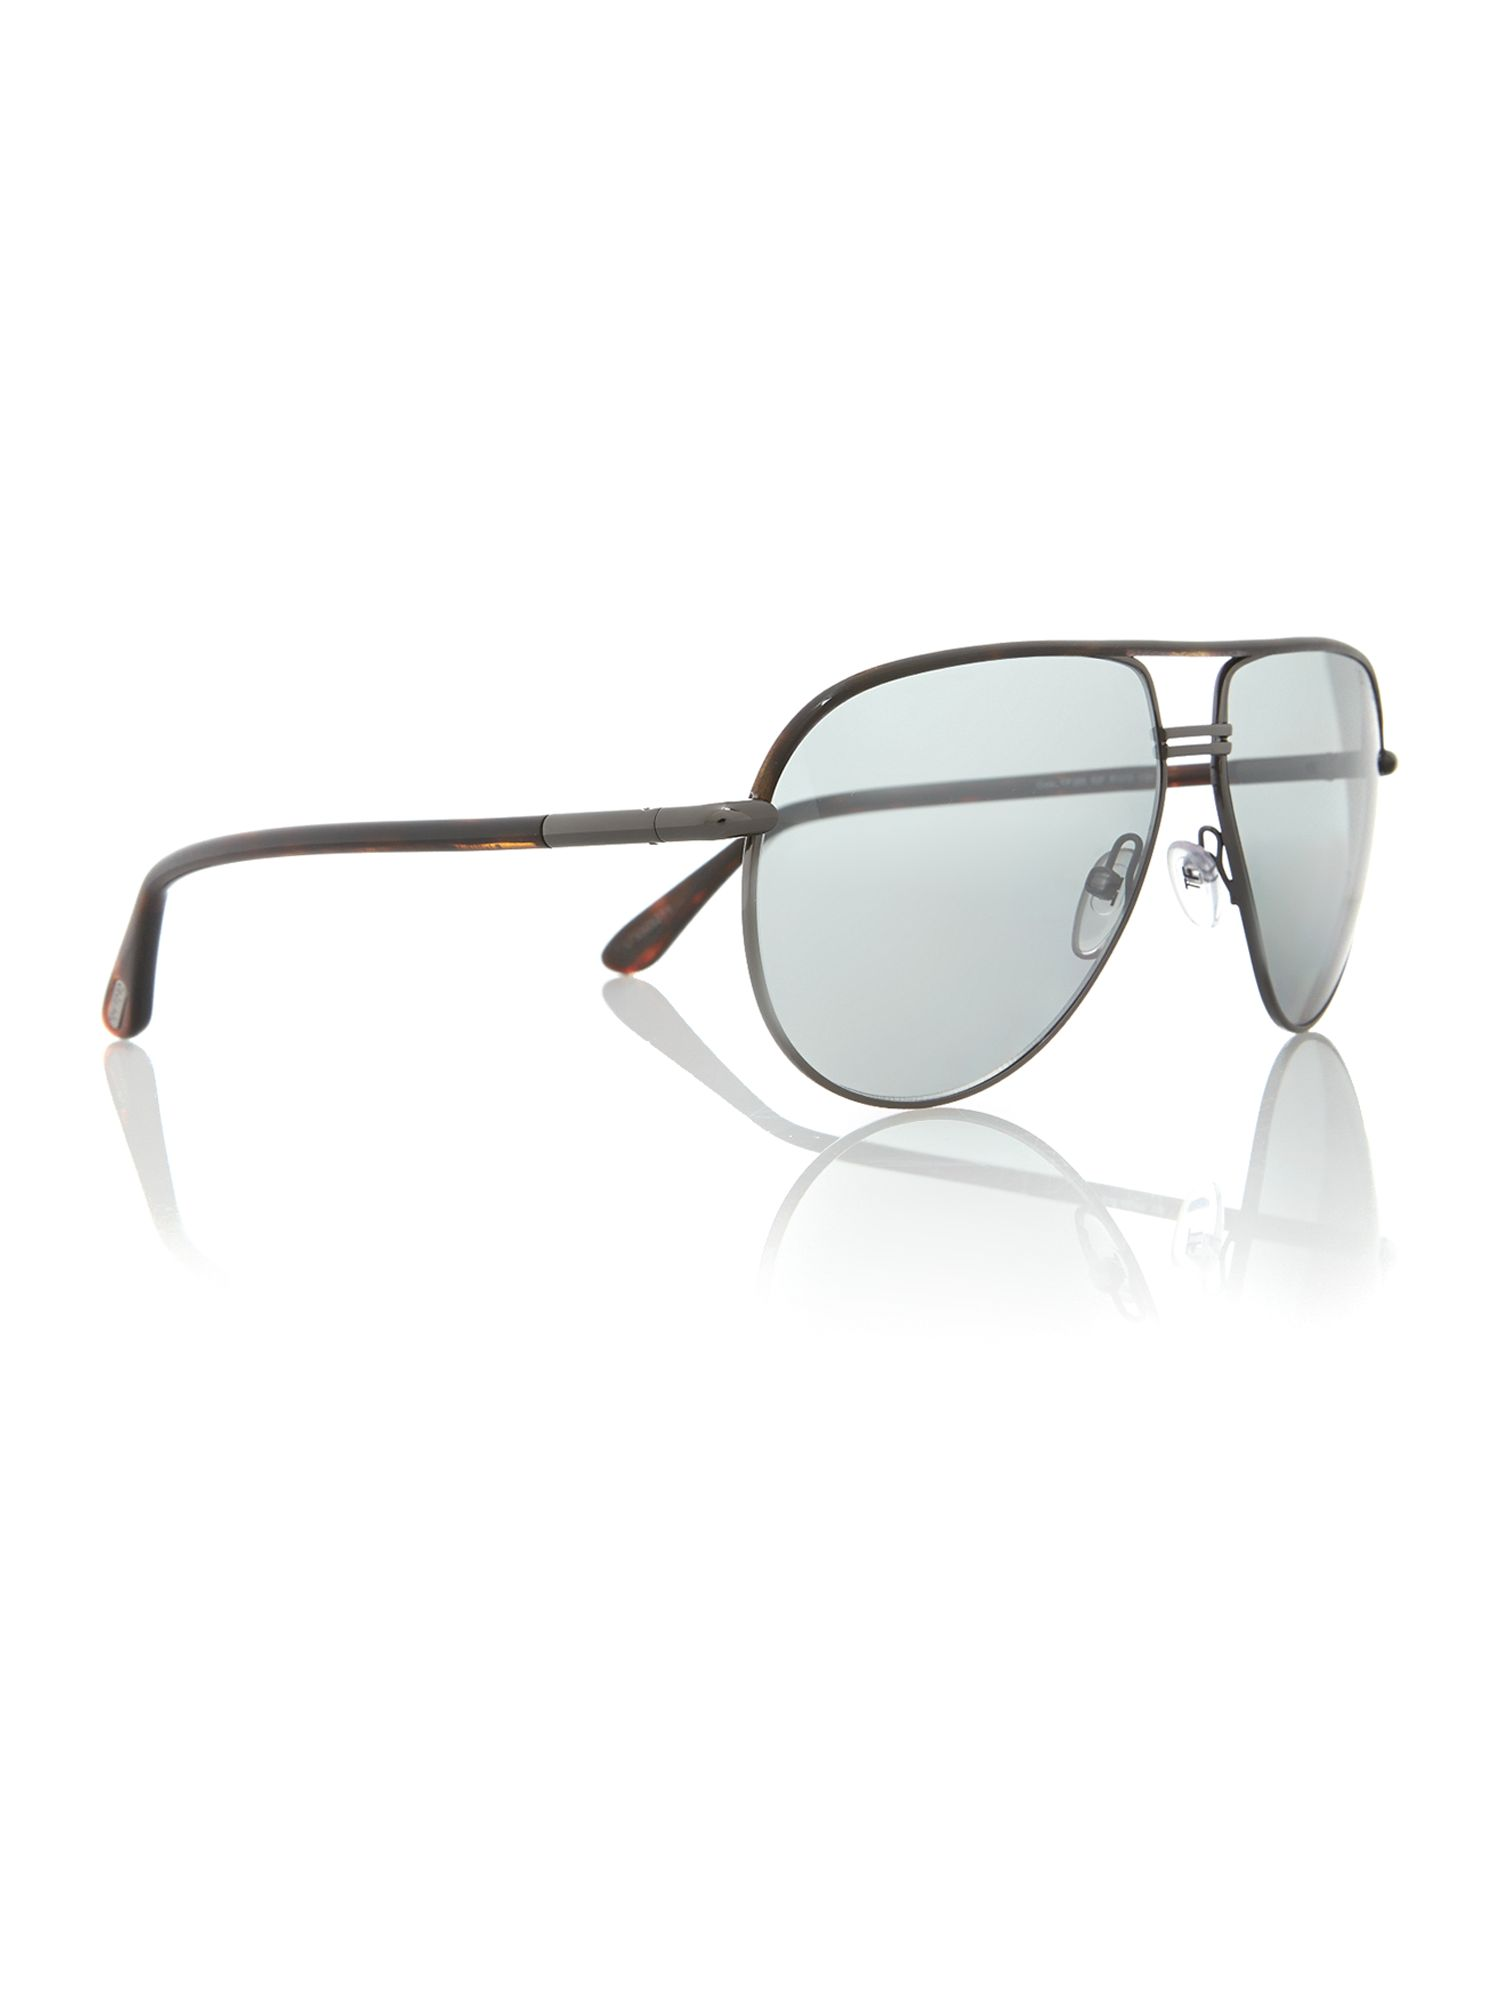 Men`s FT0285 tortoise brown cole sunglasses